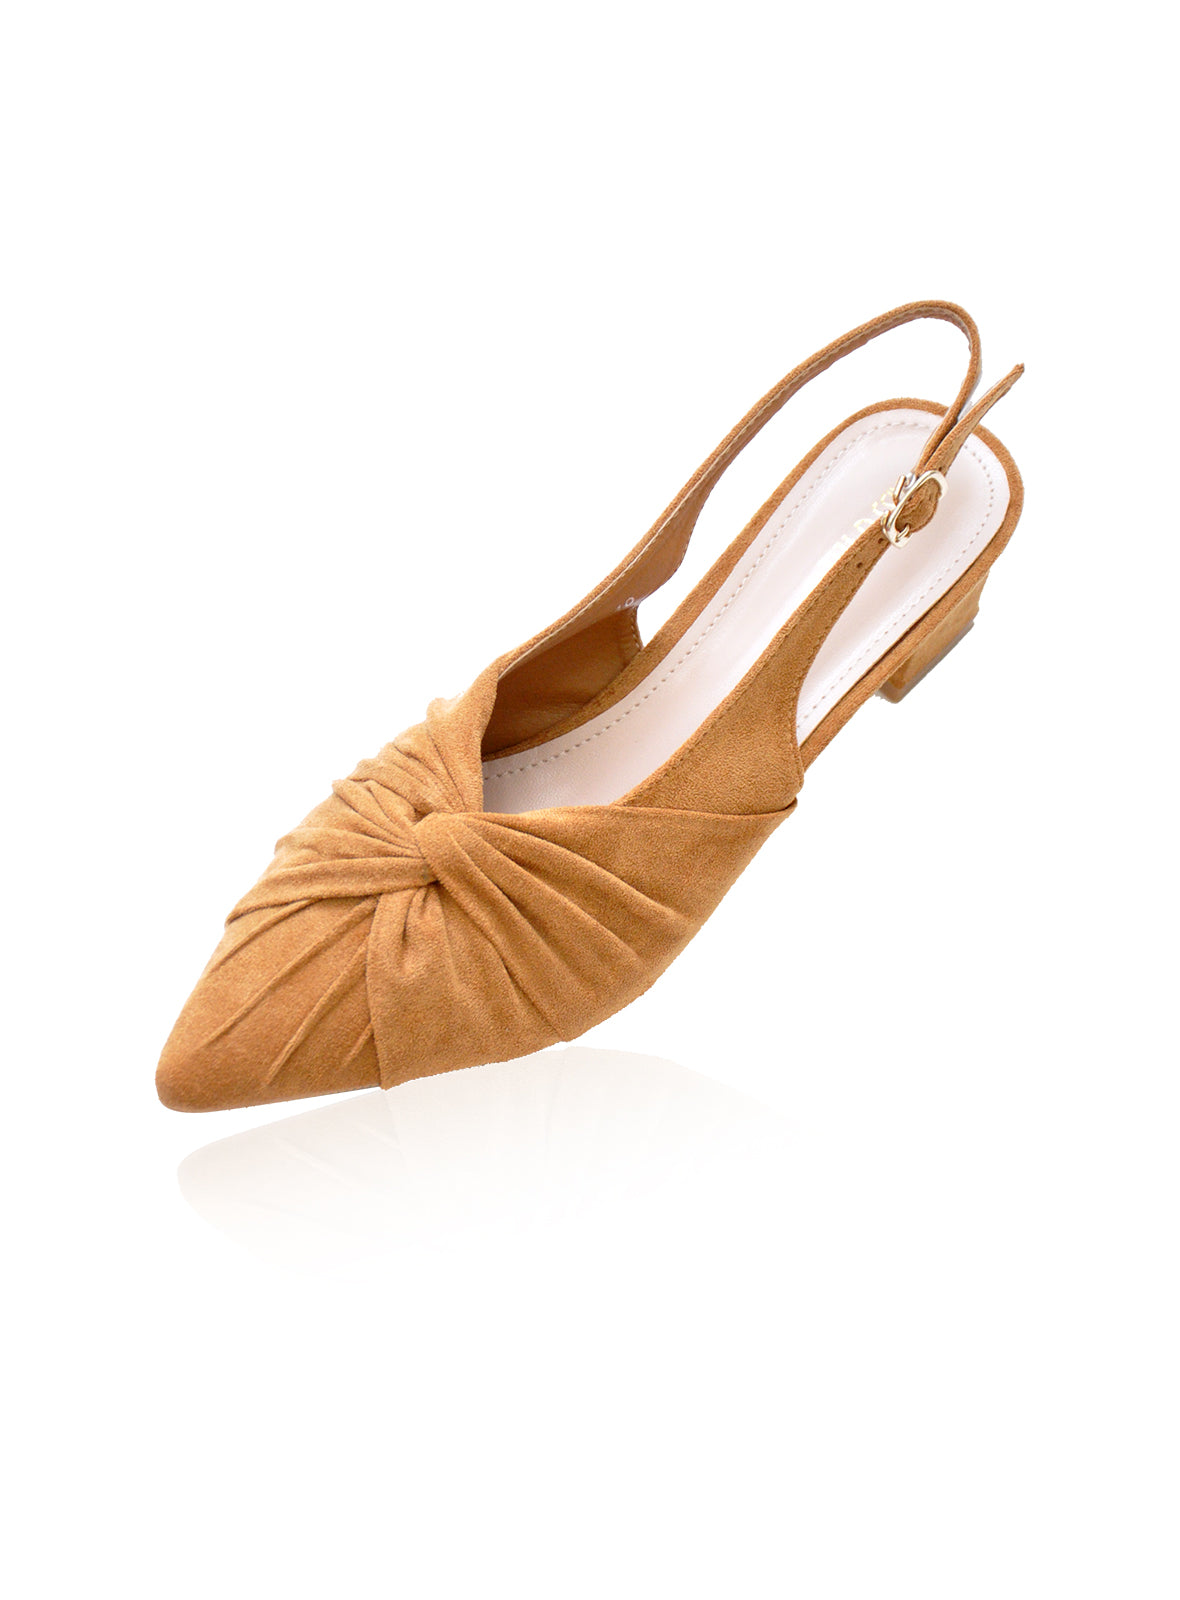 Delilah Heels in Toffee